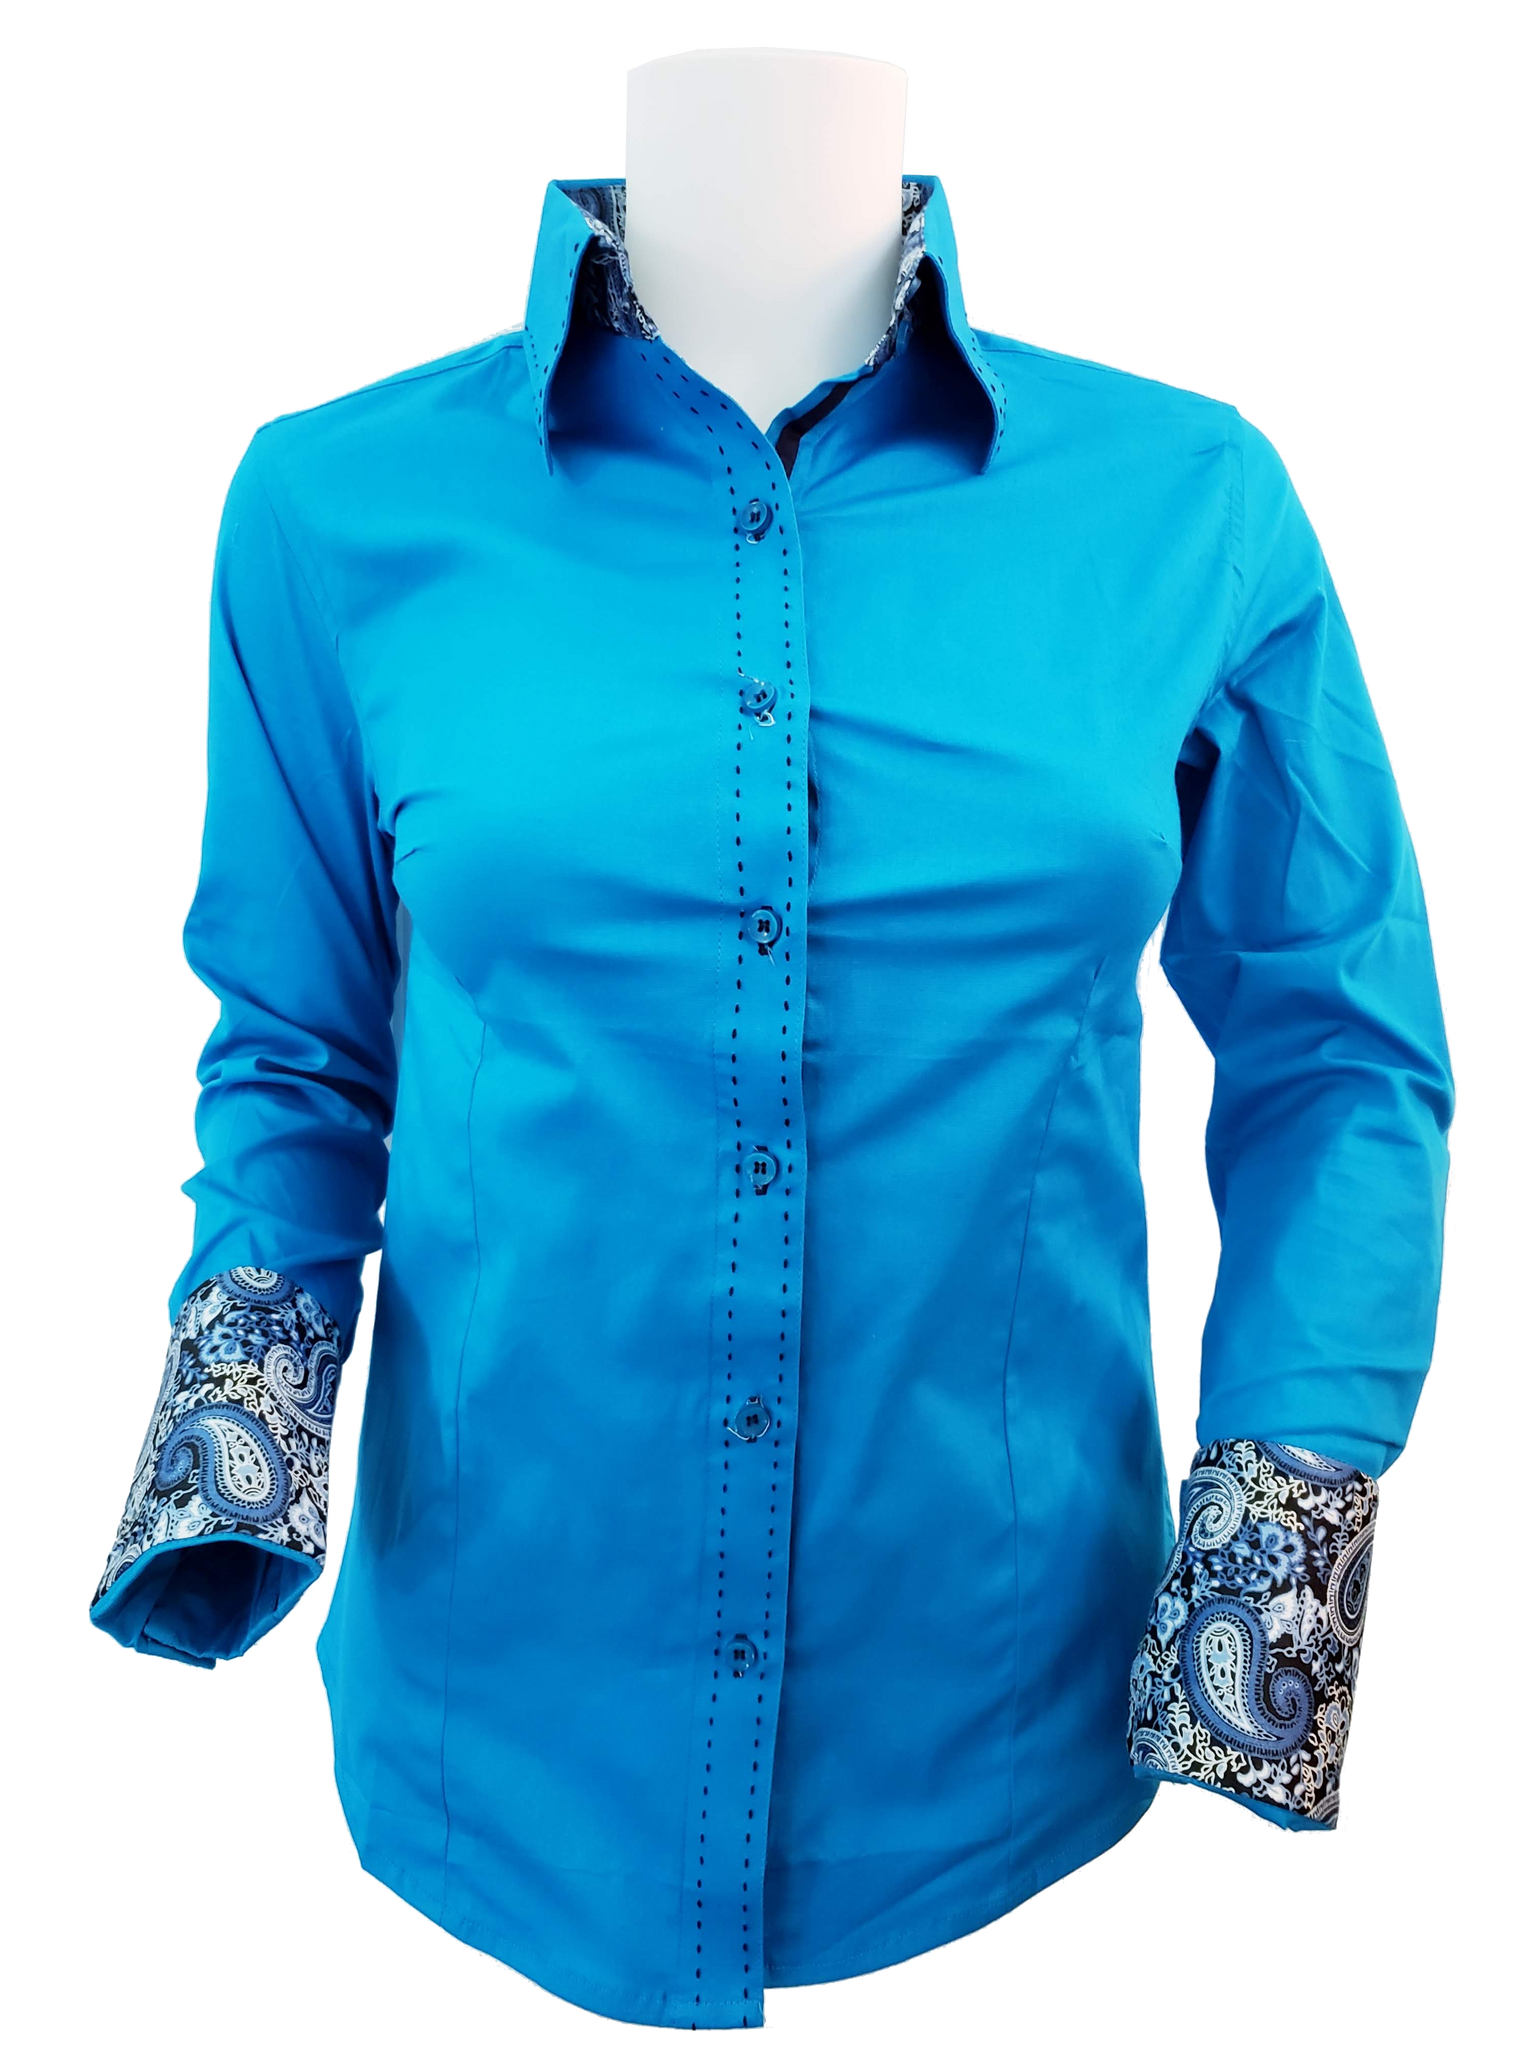 WOMENS CONTRAST CUFF & COLLAR BUCKSTITCH SHOW SHIRT (TURQUOISE)